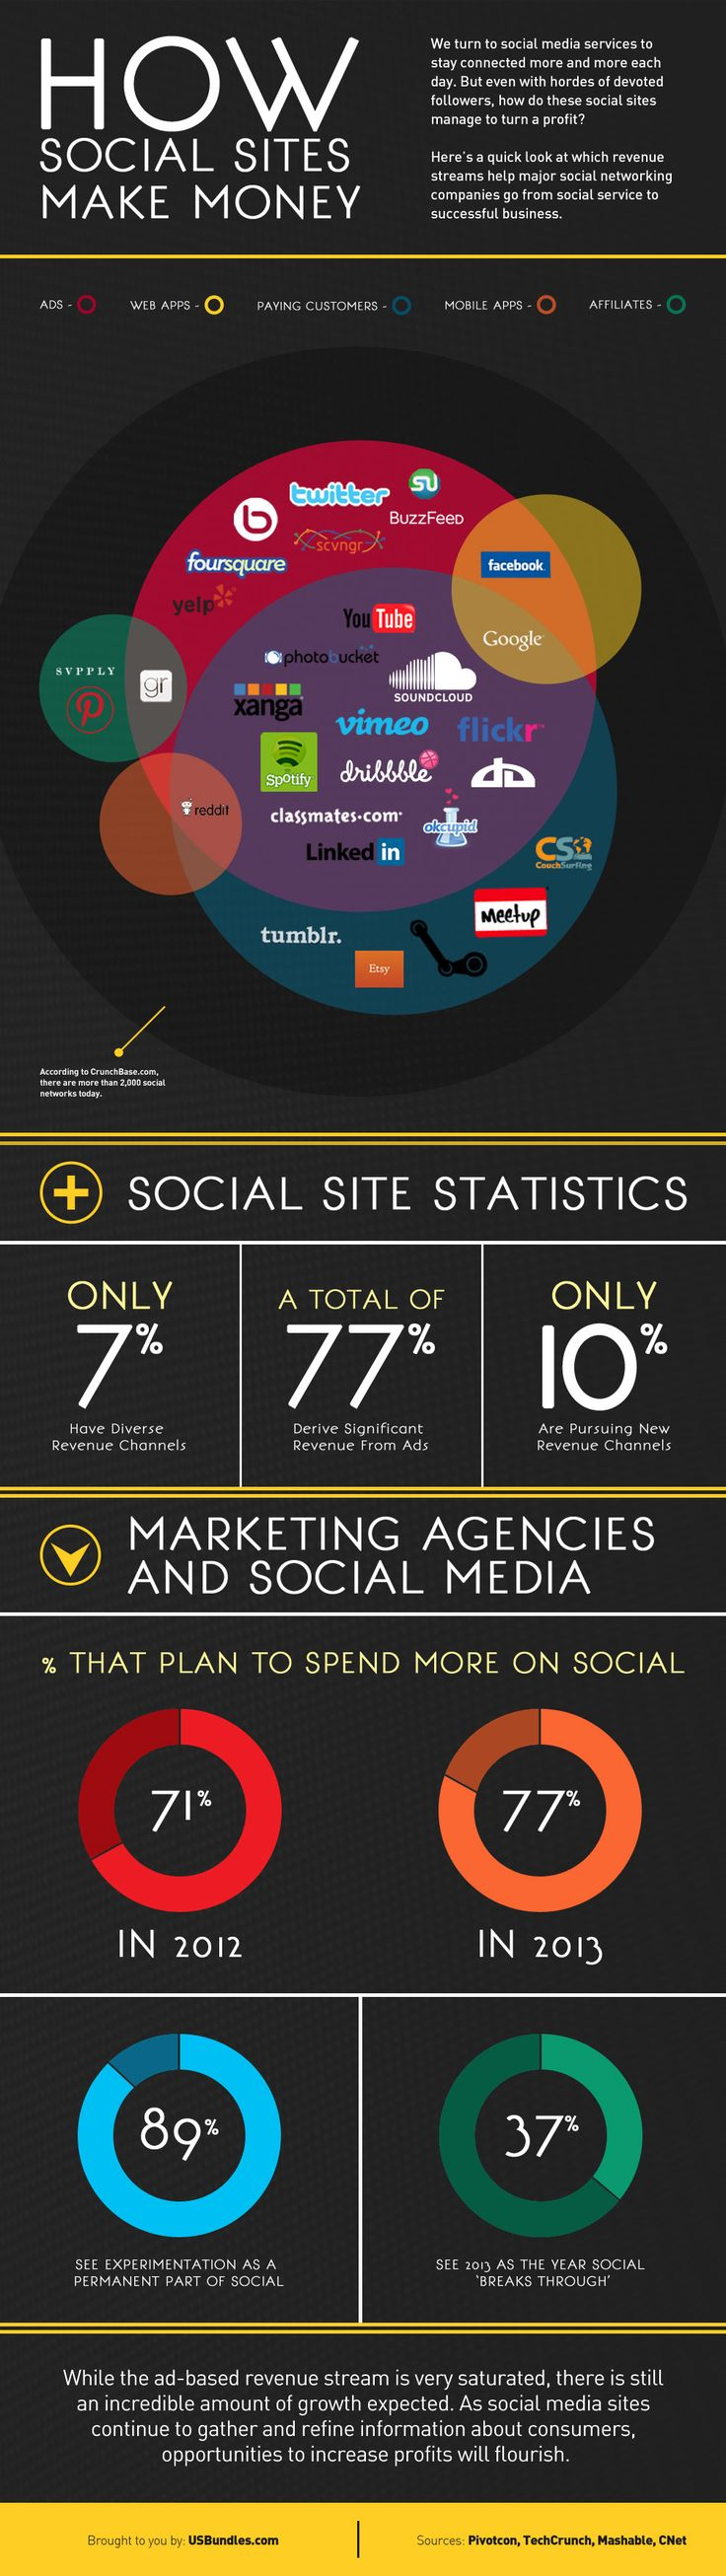 How Do Facebook, Twitter and Pinterest Make Money? [INFOGRAPHIC]